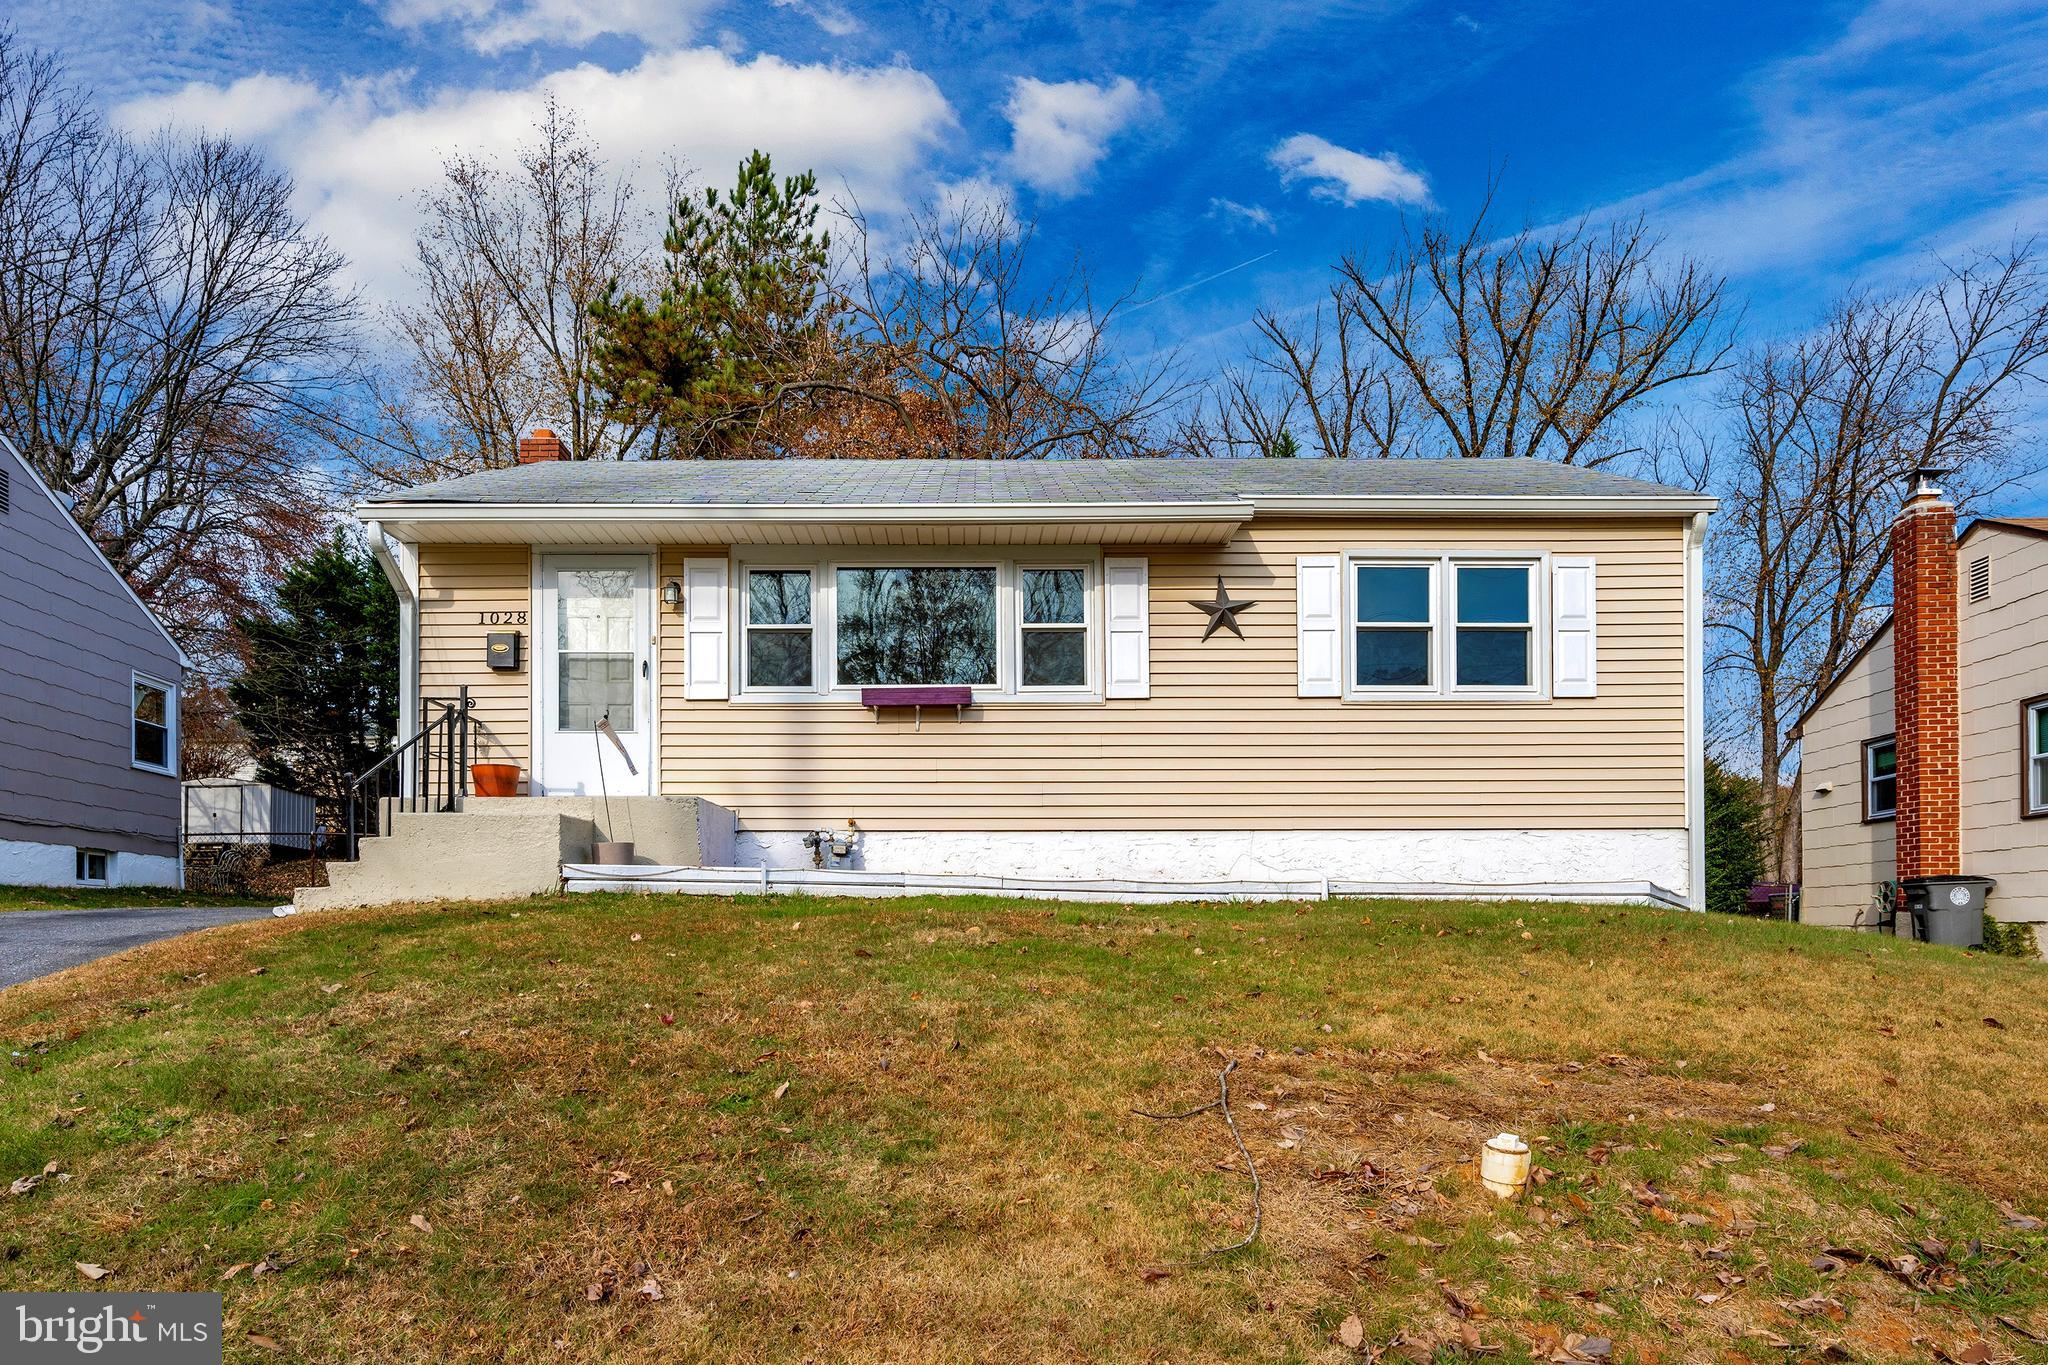 1028 VEIRS MILL ROAD, ROCKVILLE, MD 20851